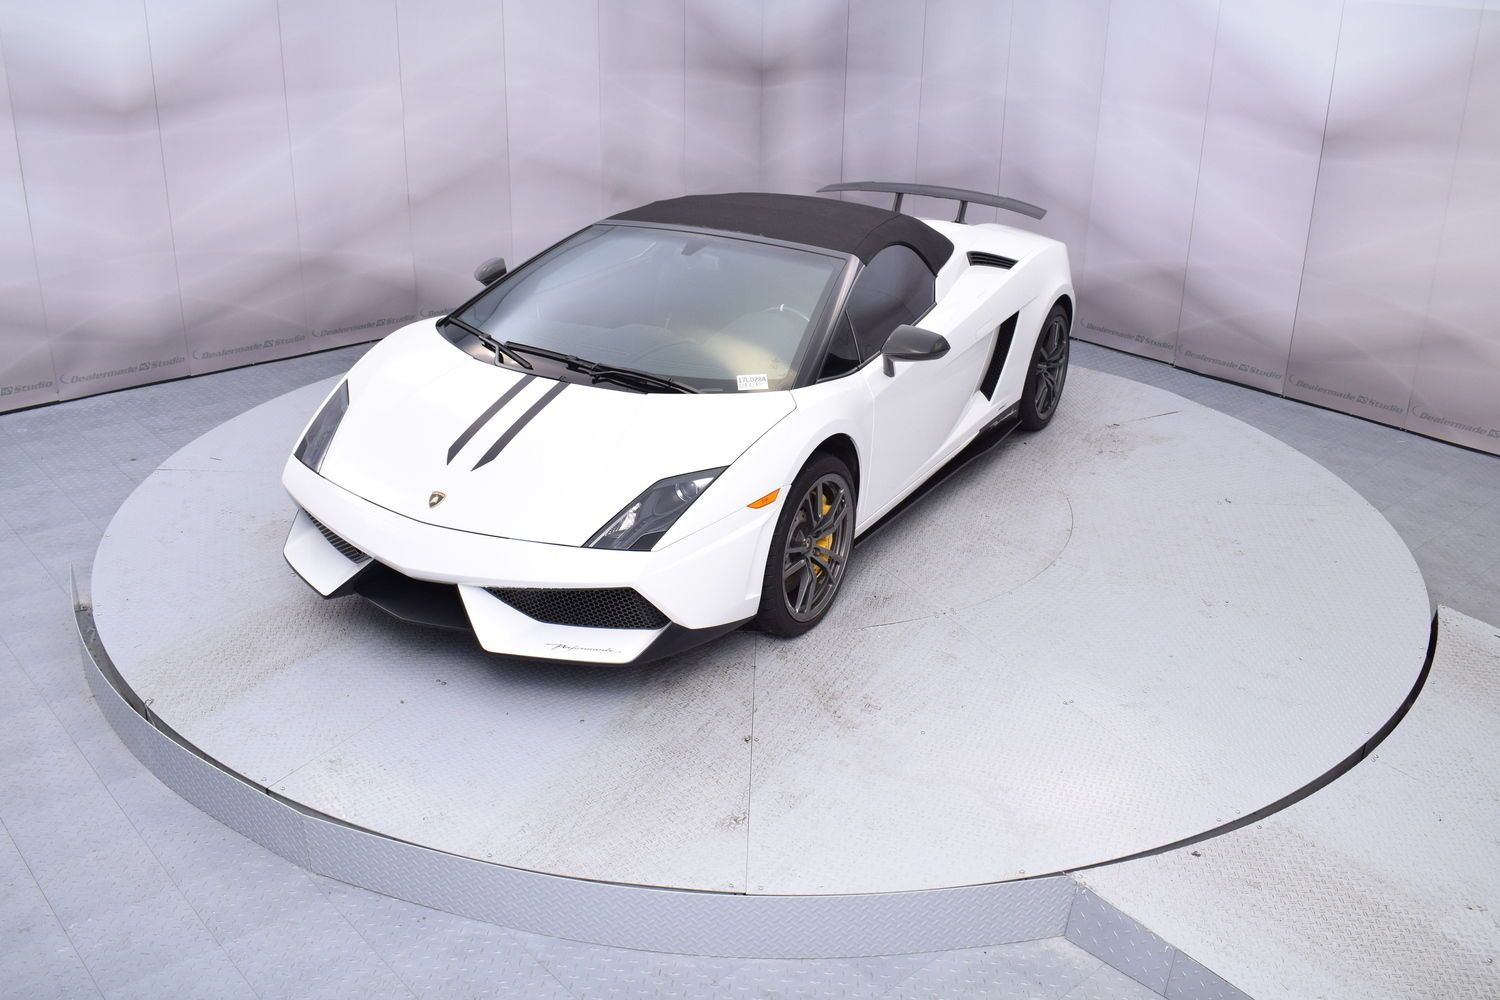 natal details for sale used kwazulu in lamborghini cars by vehicle coupe owner showroom huracan